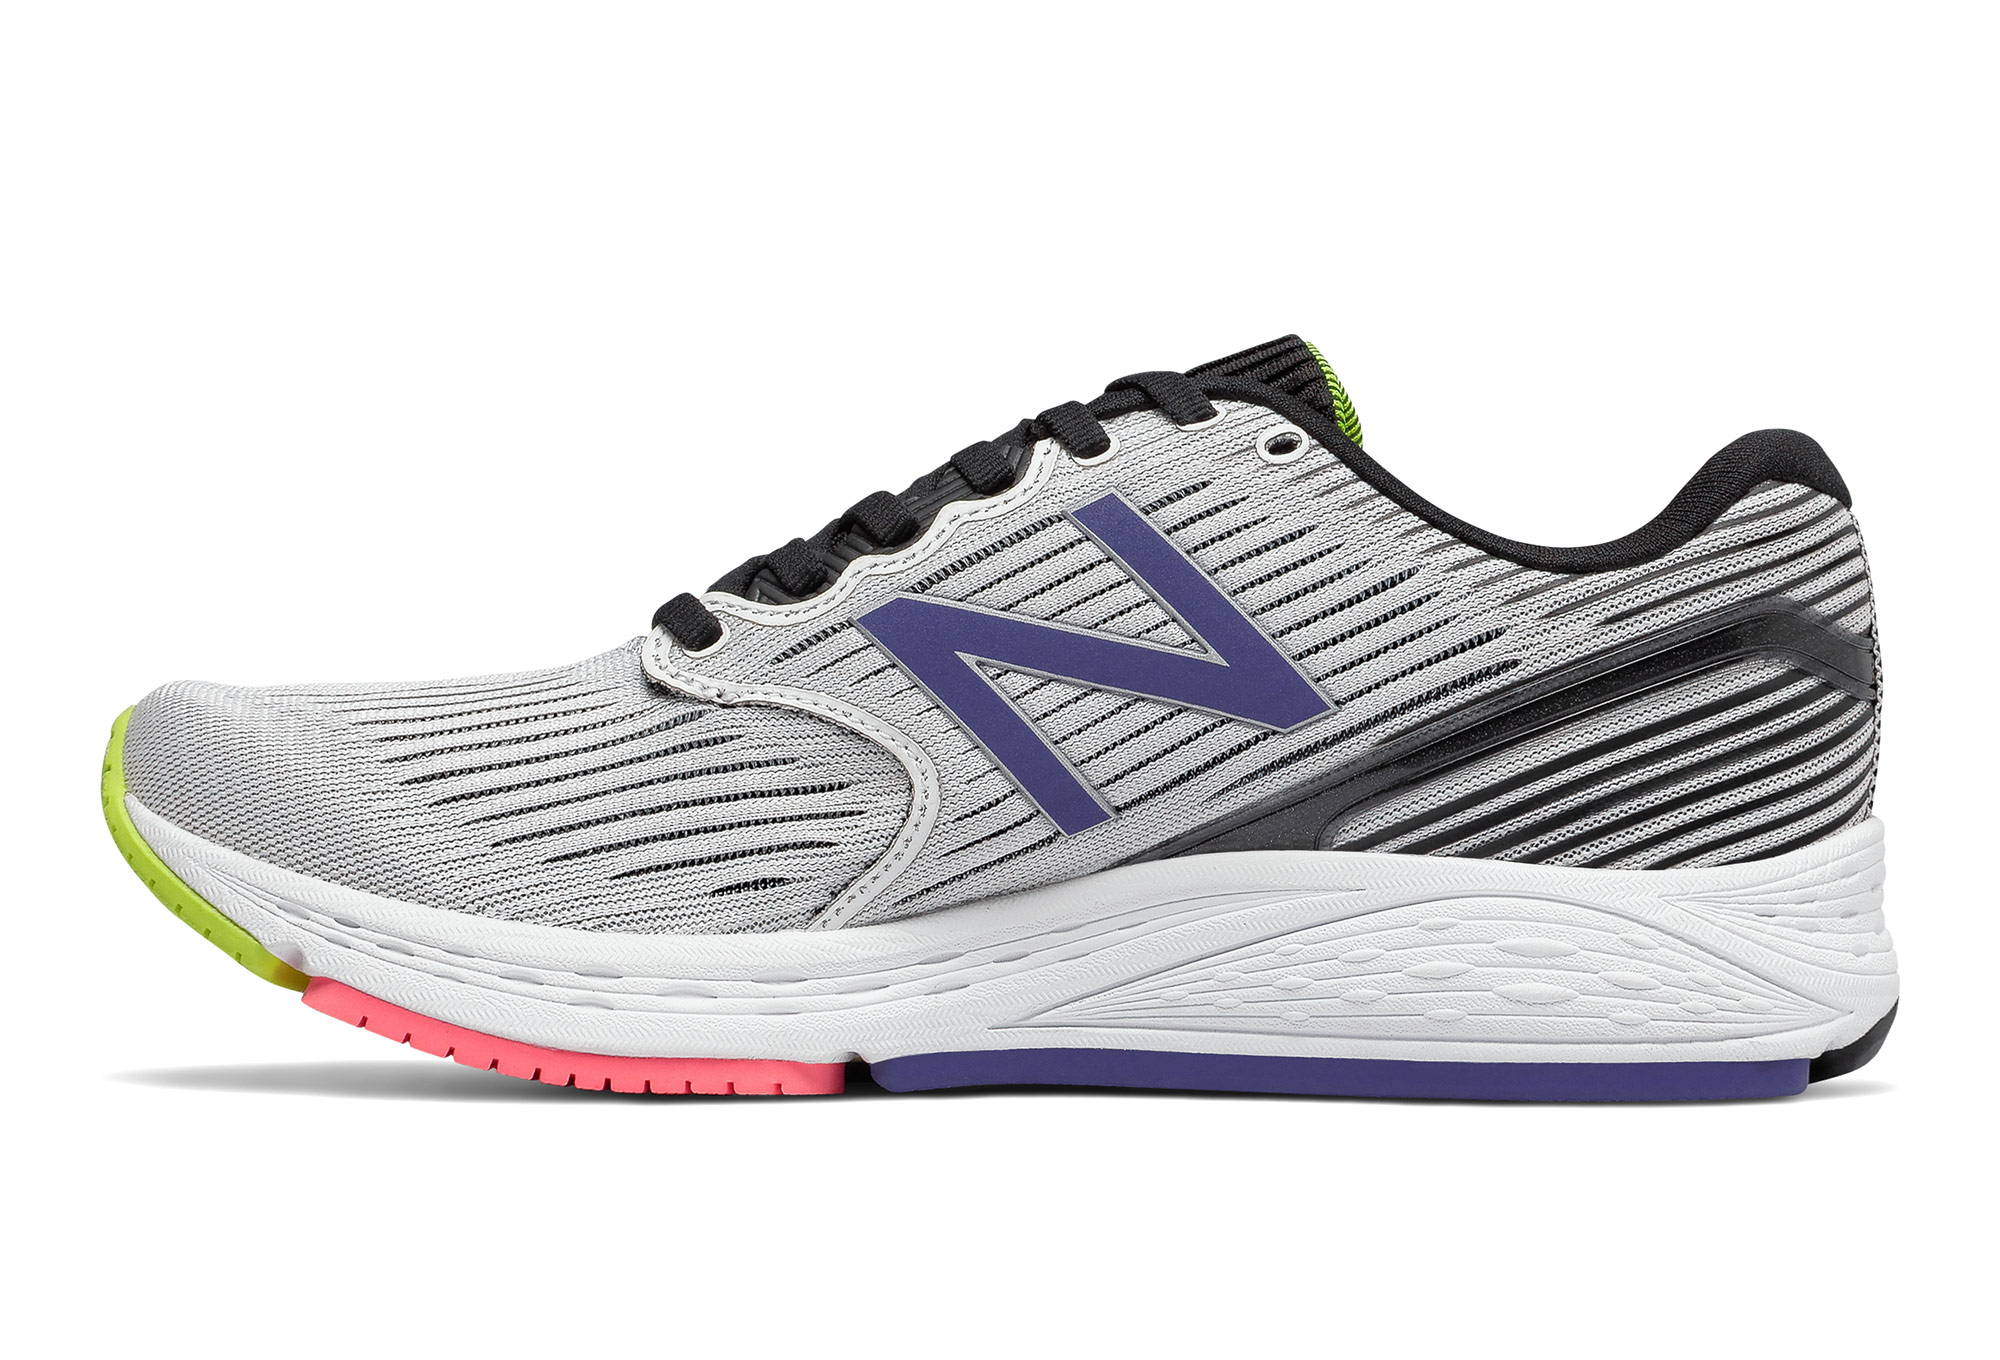 New Balance NBX 890 V6 Grey Multi-color Women